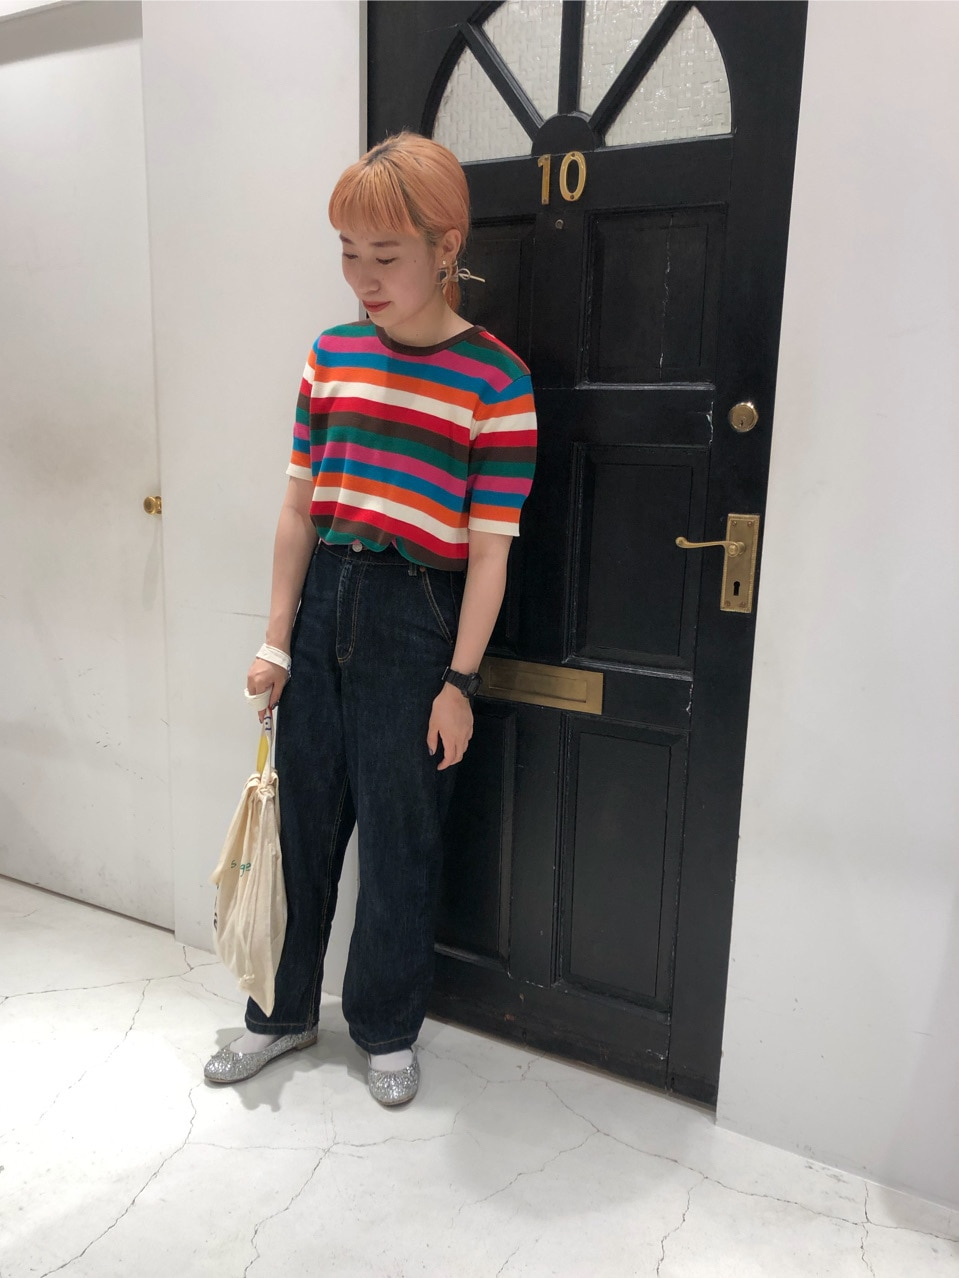 Dot and Stripes CHILD WOMAN ルクアイーレ 身長:157cm 2020.06.25